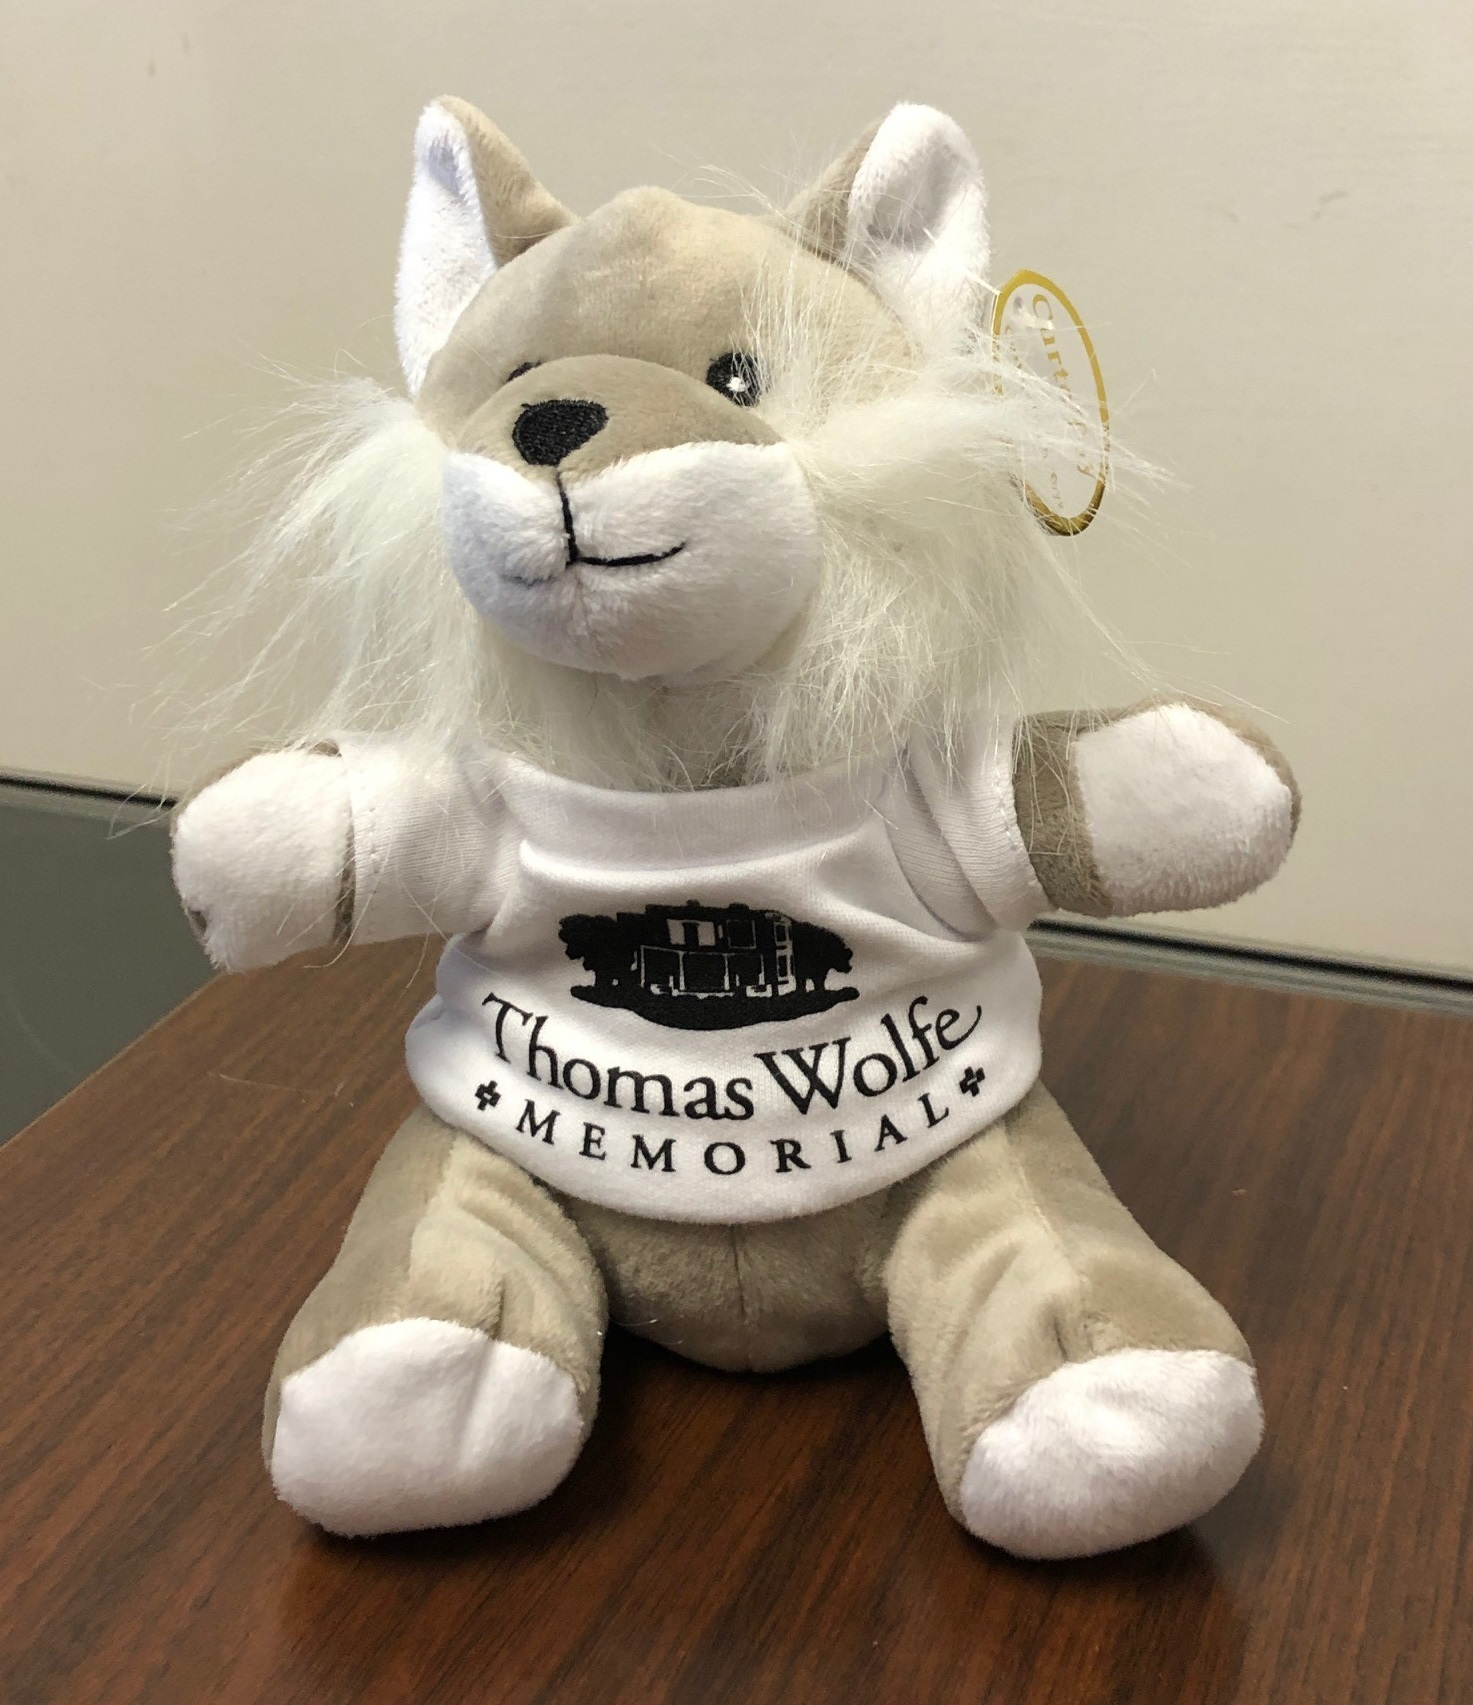 A plush animal of a wolfe wearing a white shirt with the Old Kentucky Home in black and the words Thomas Wolfe Memorial